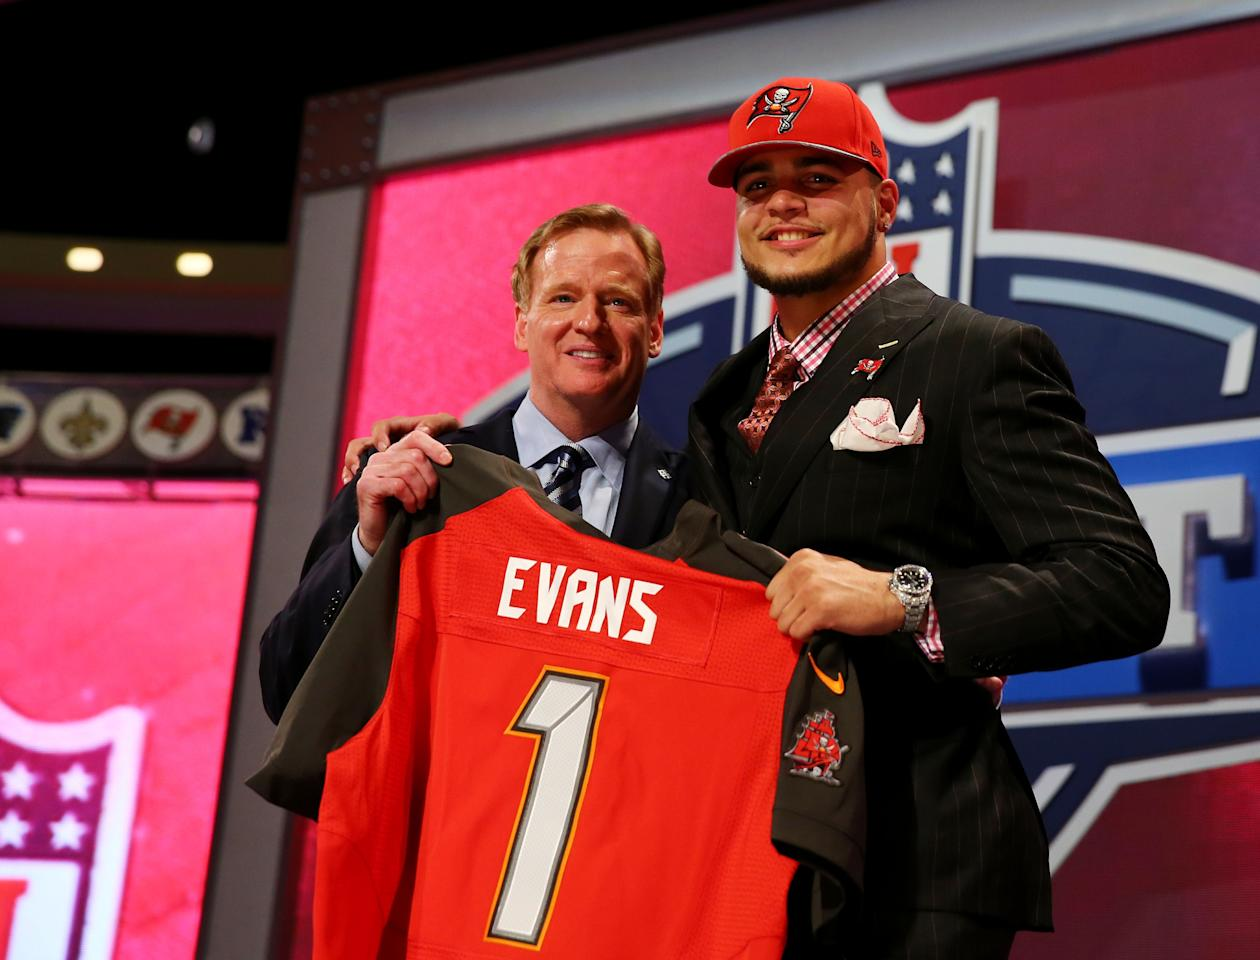 NEW YORK, NY - MAY 08: Mike Evans of the Texas A&M Aggies poses w NFL Commissioner Roger Goodell after he was picked #7 overall by the Tampa Bay Buccaneers during the first round of the 2014 NFL Draft at Radio City Music Hall on May 8, 2014 in New York City. (Photo by Elsa/Getty Images)